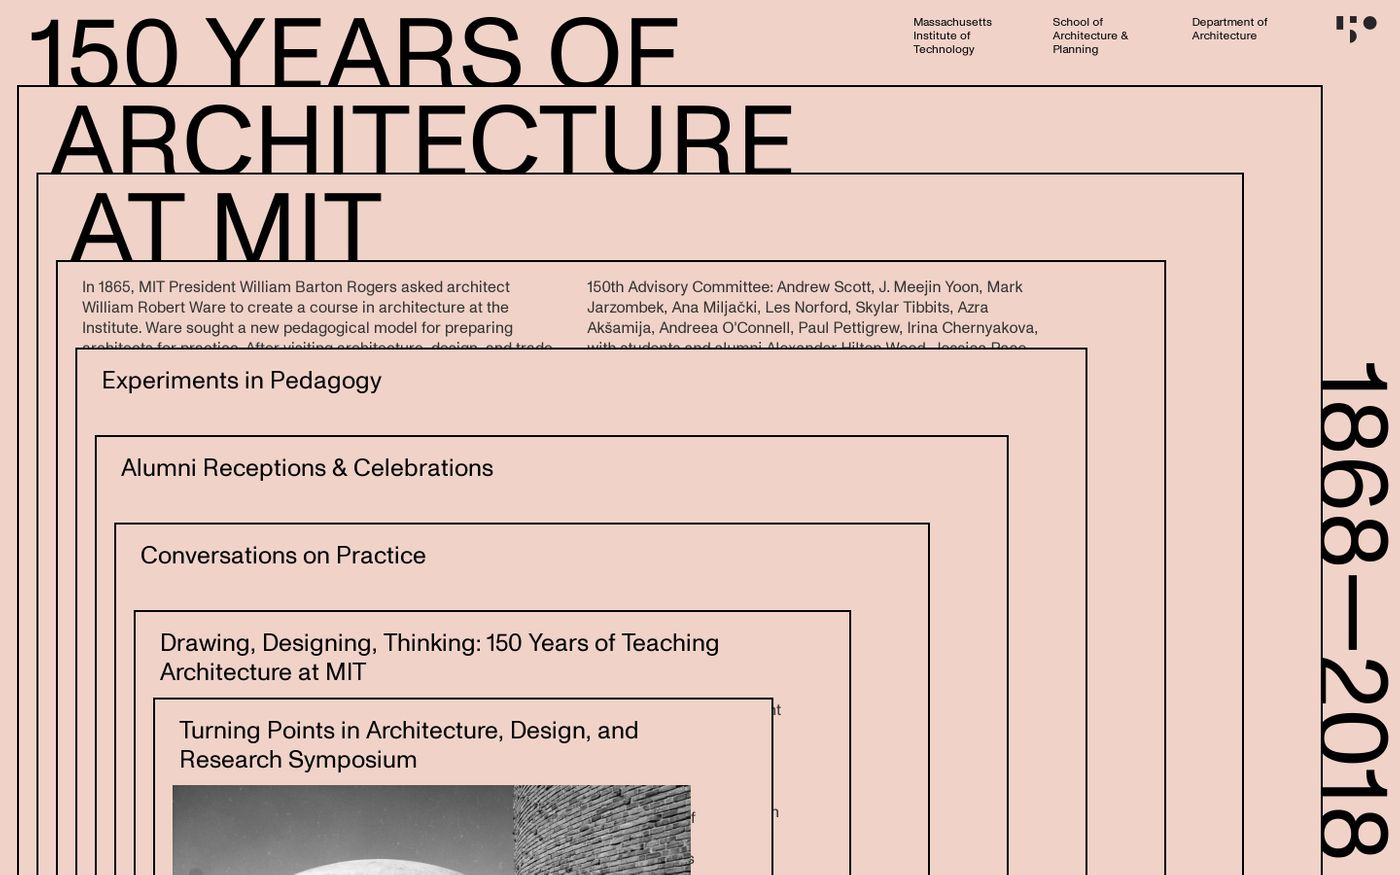 Screenshot of 150 years of architecture website